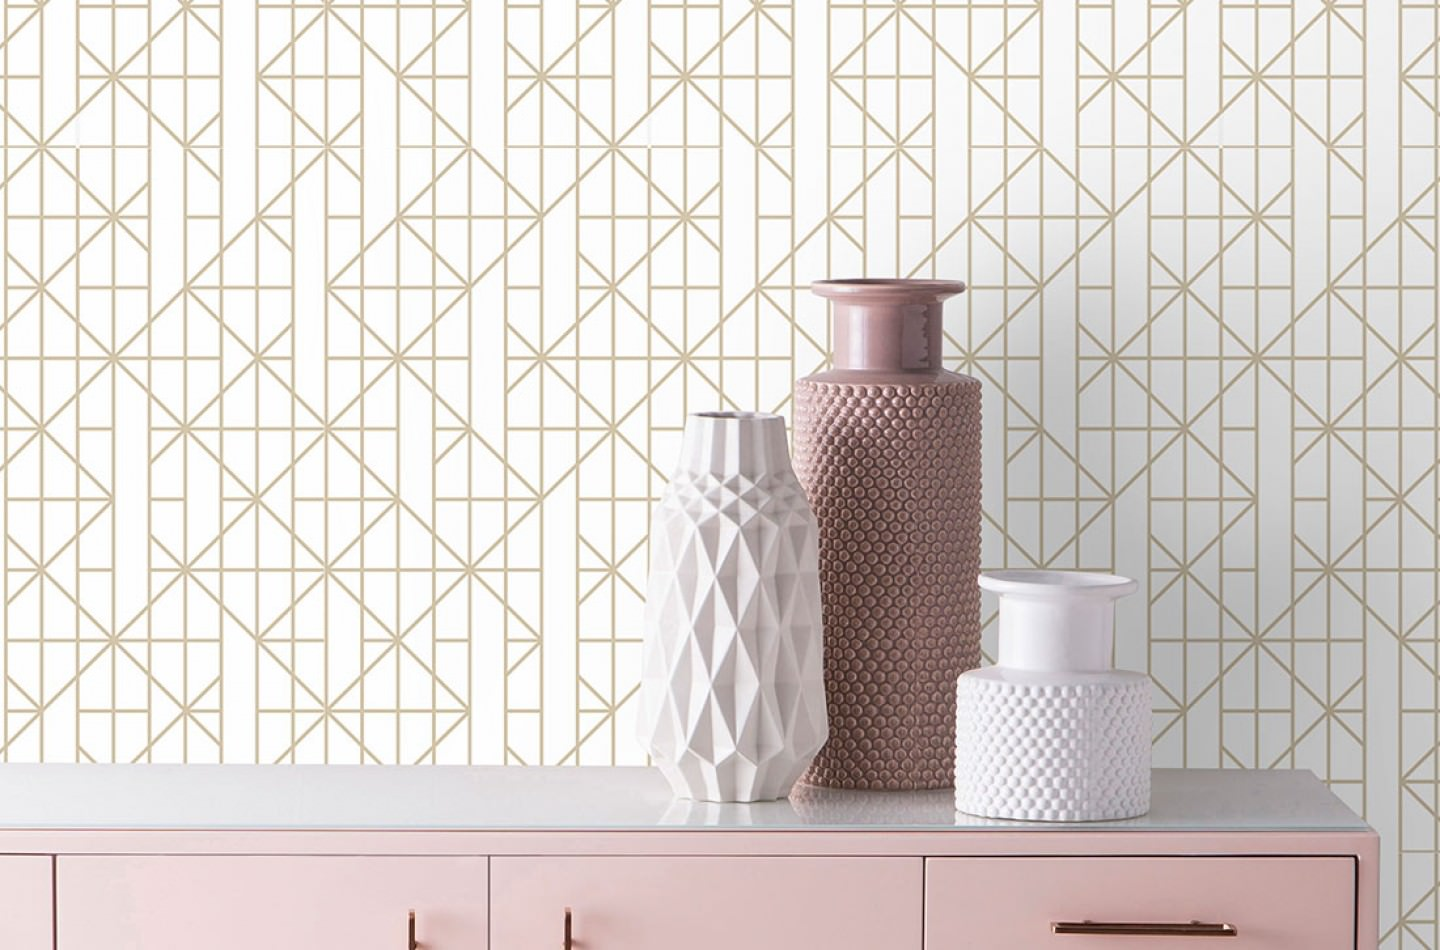 MODERNISE THE LOOK OF YOUR KITCHEN WITH WALLPAPER